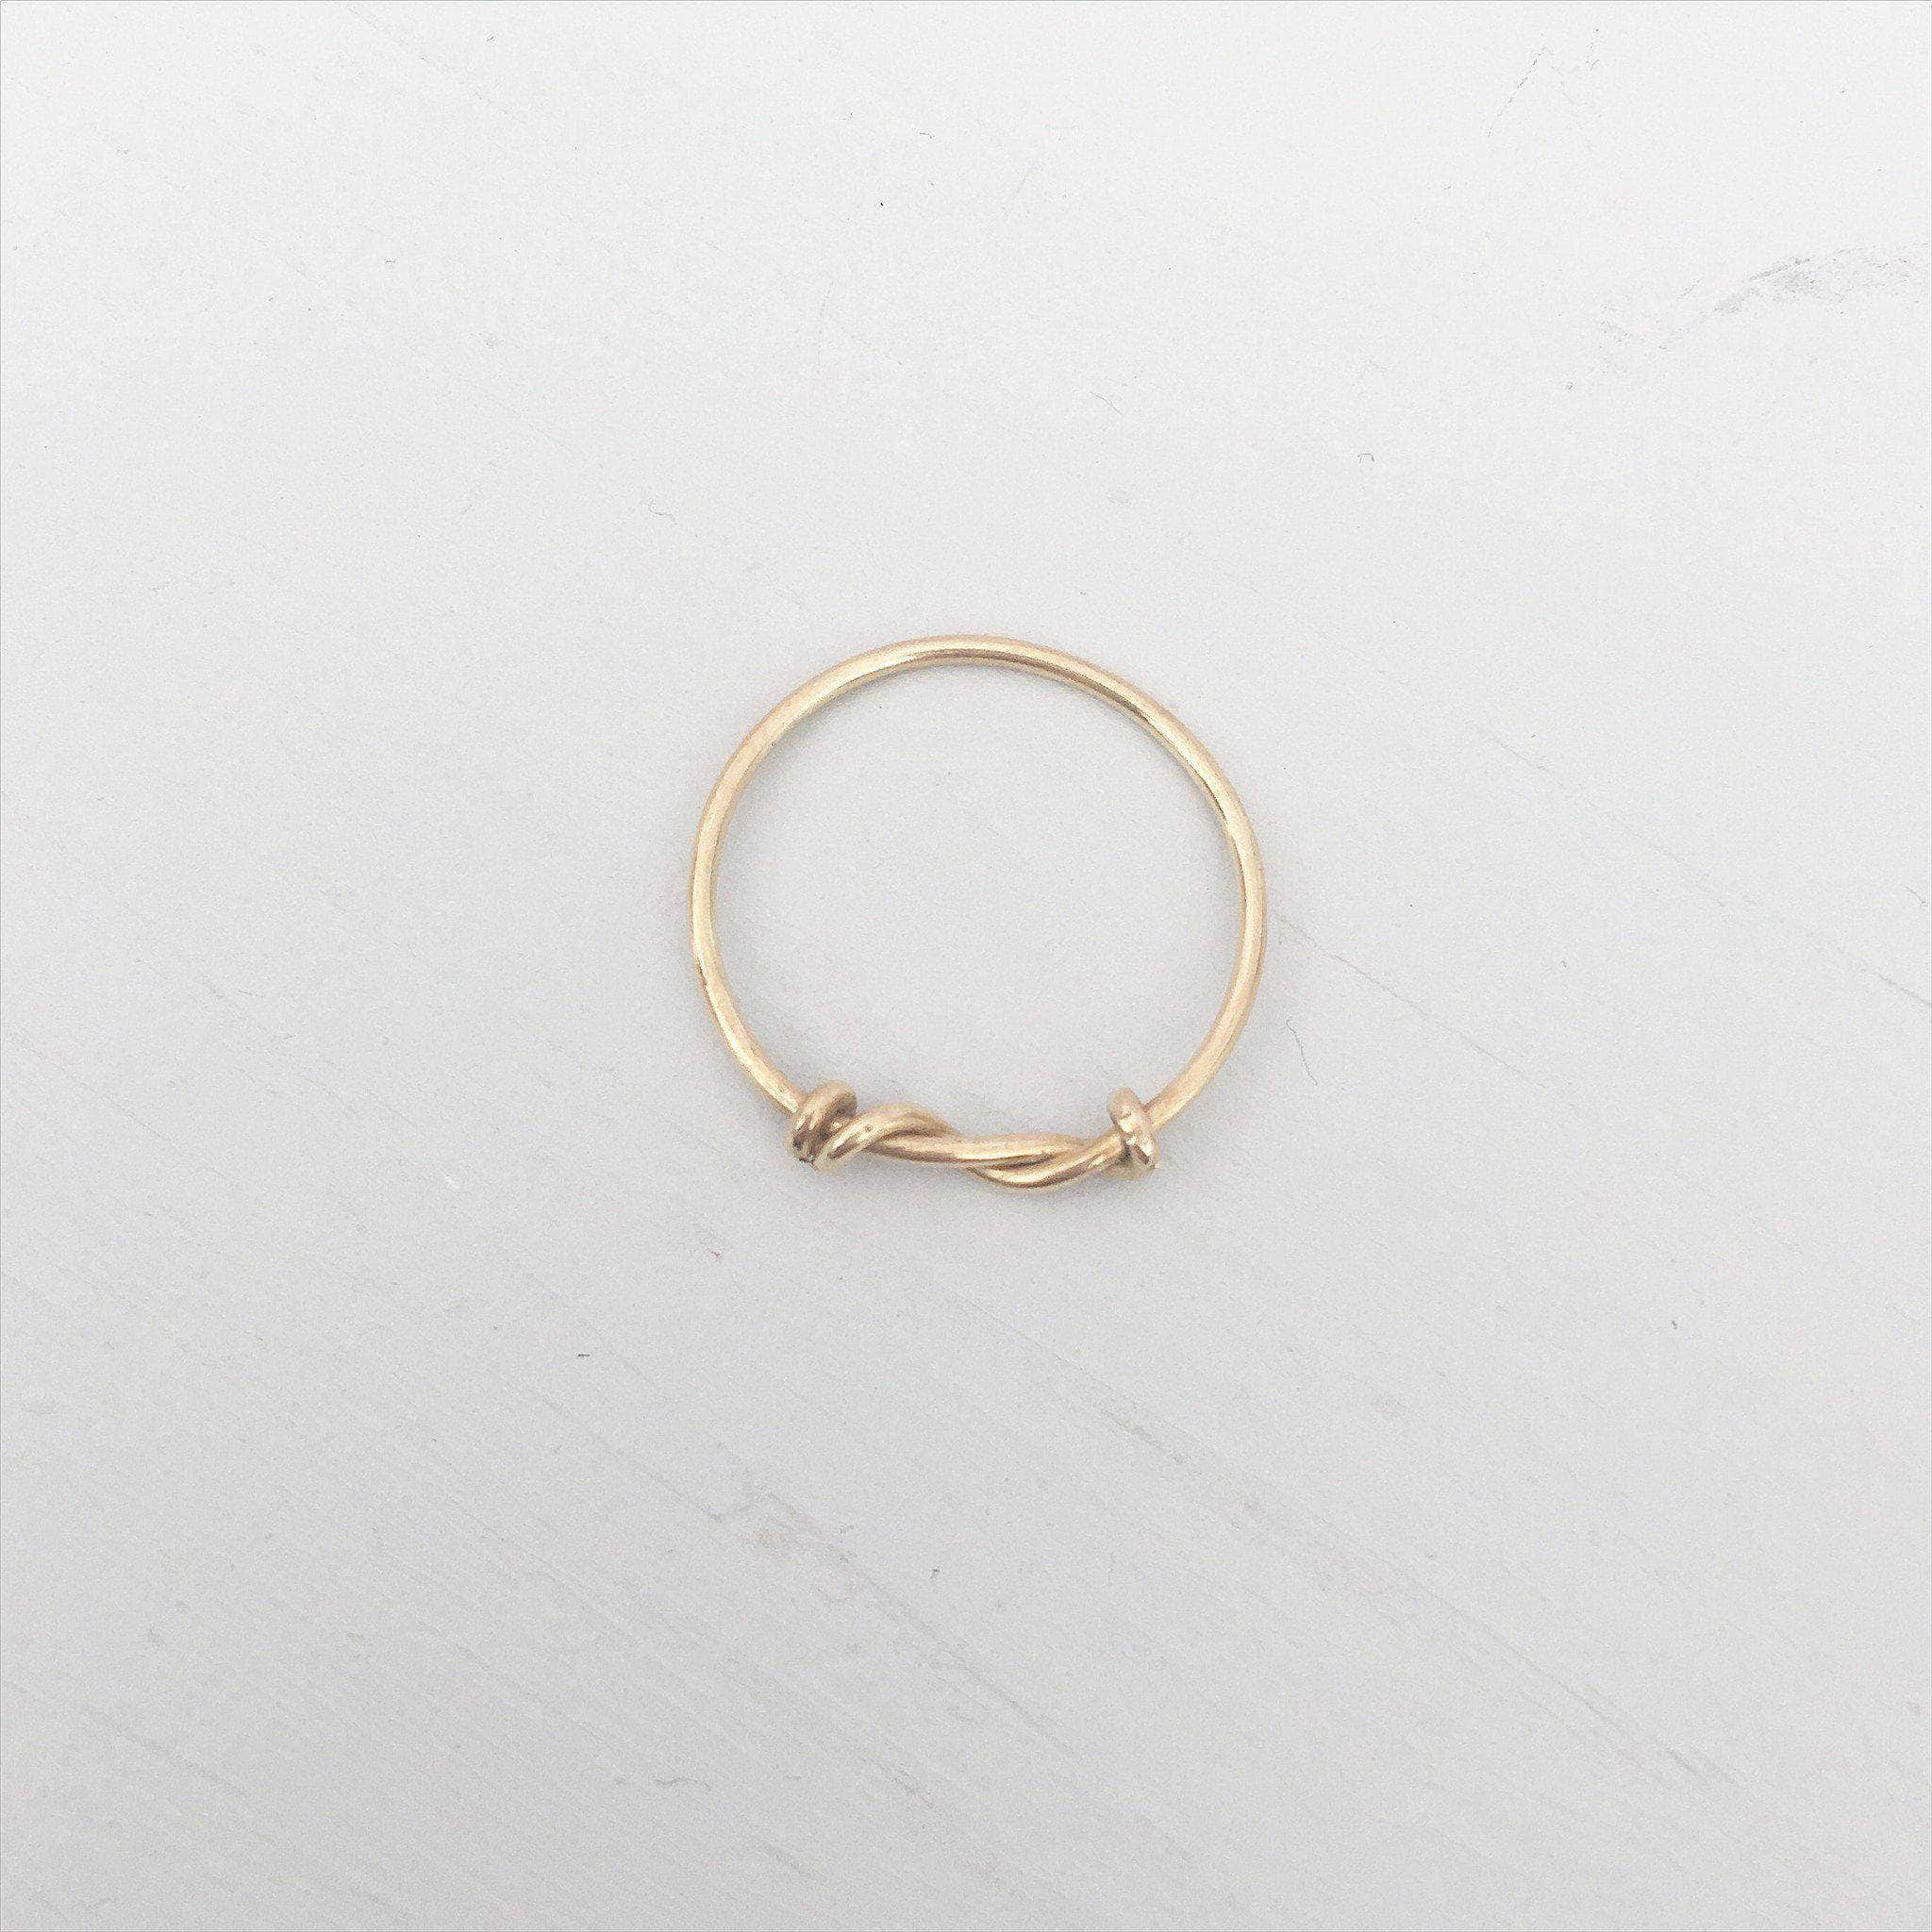 Bridesmaid 'thank you' gift ring - 'Afia' in gold